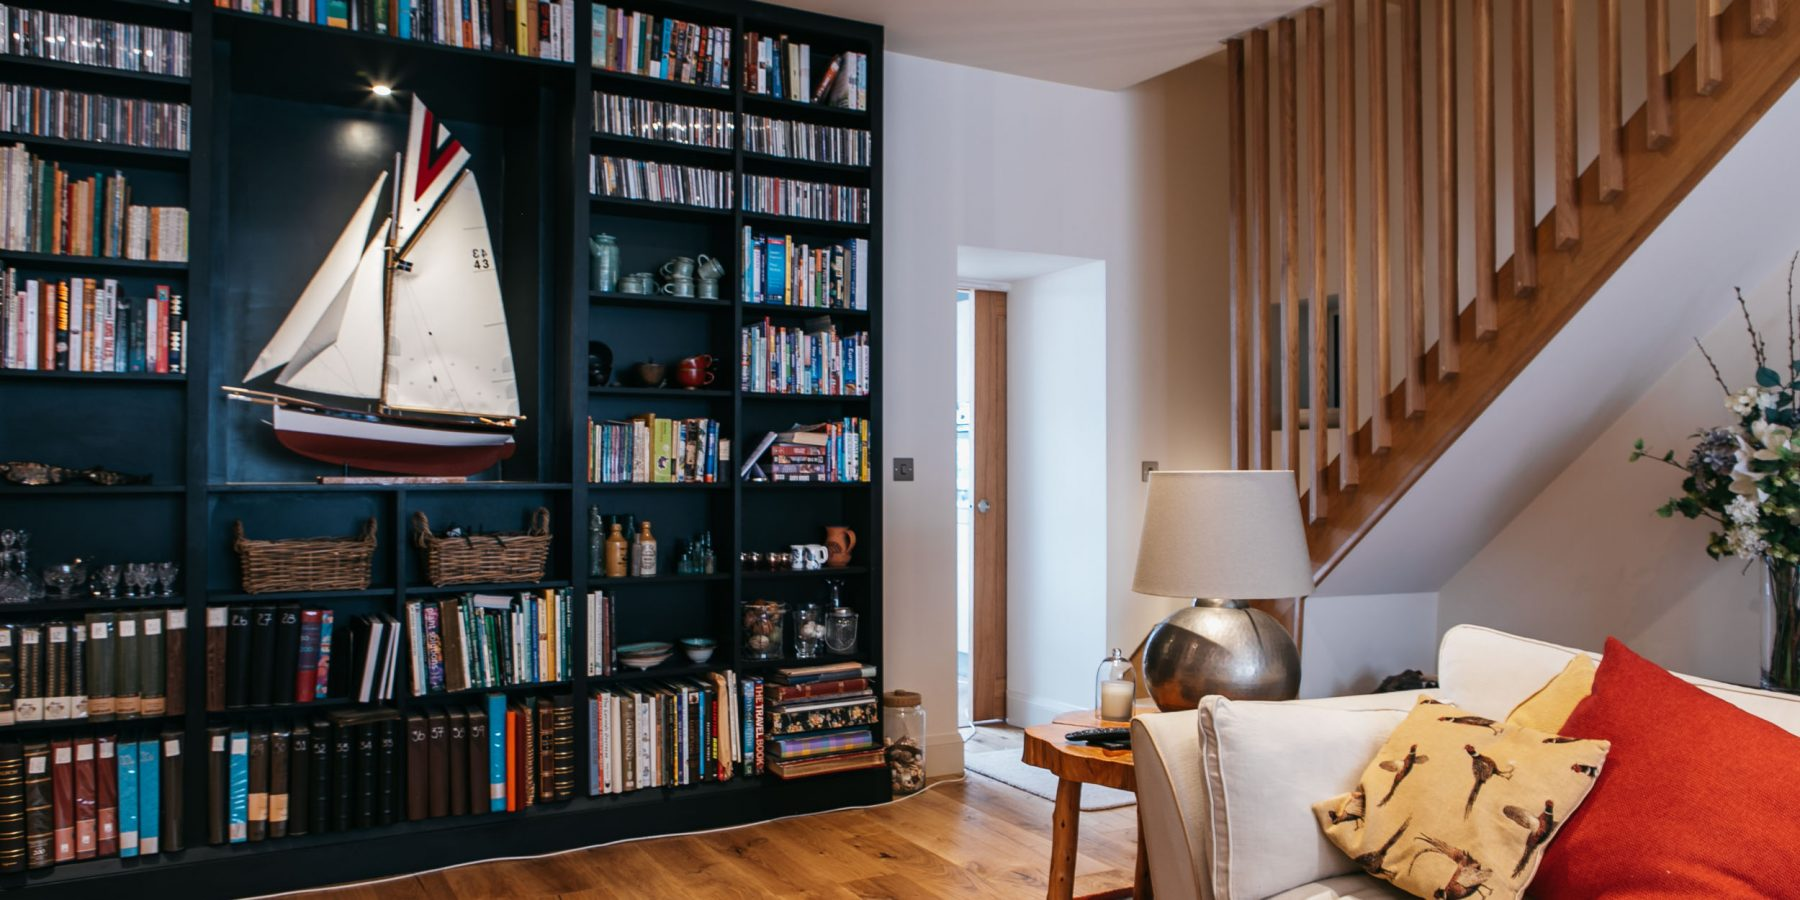 Dark custom joined bookcase displaying a model boat in a sitting room